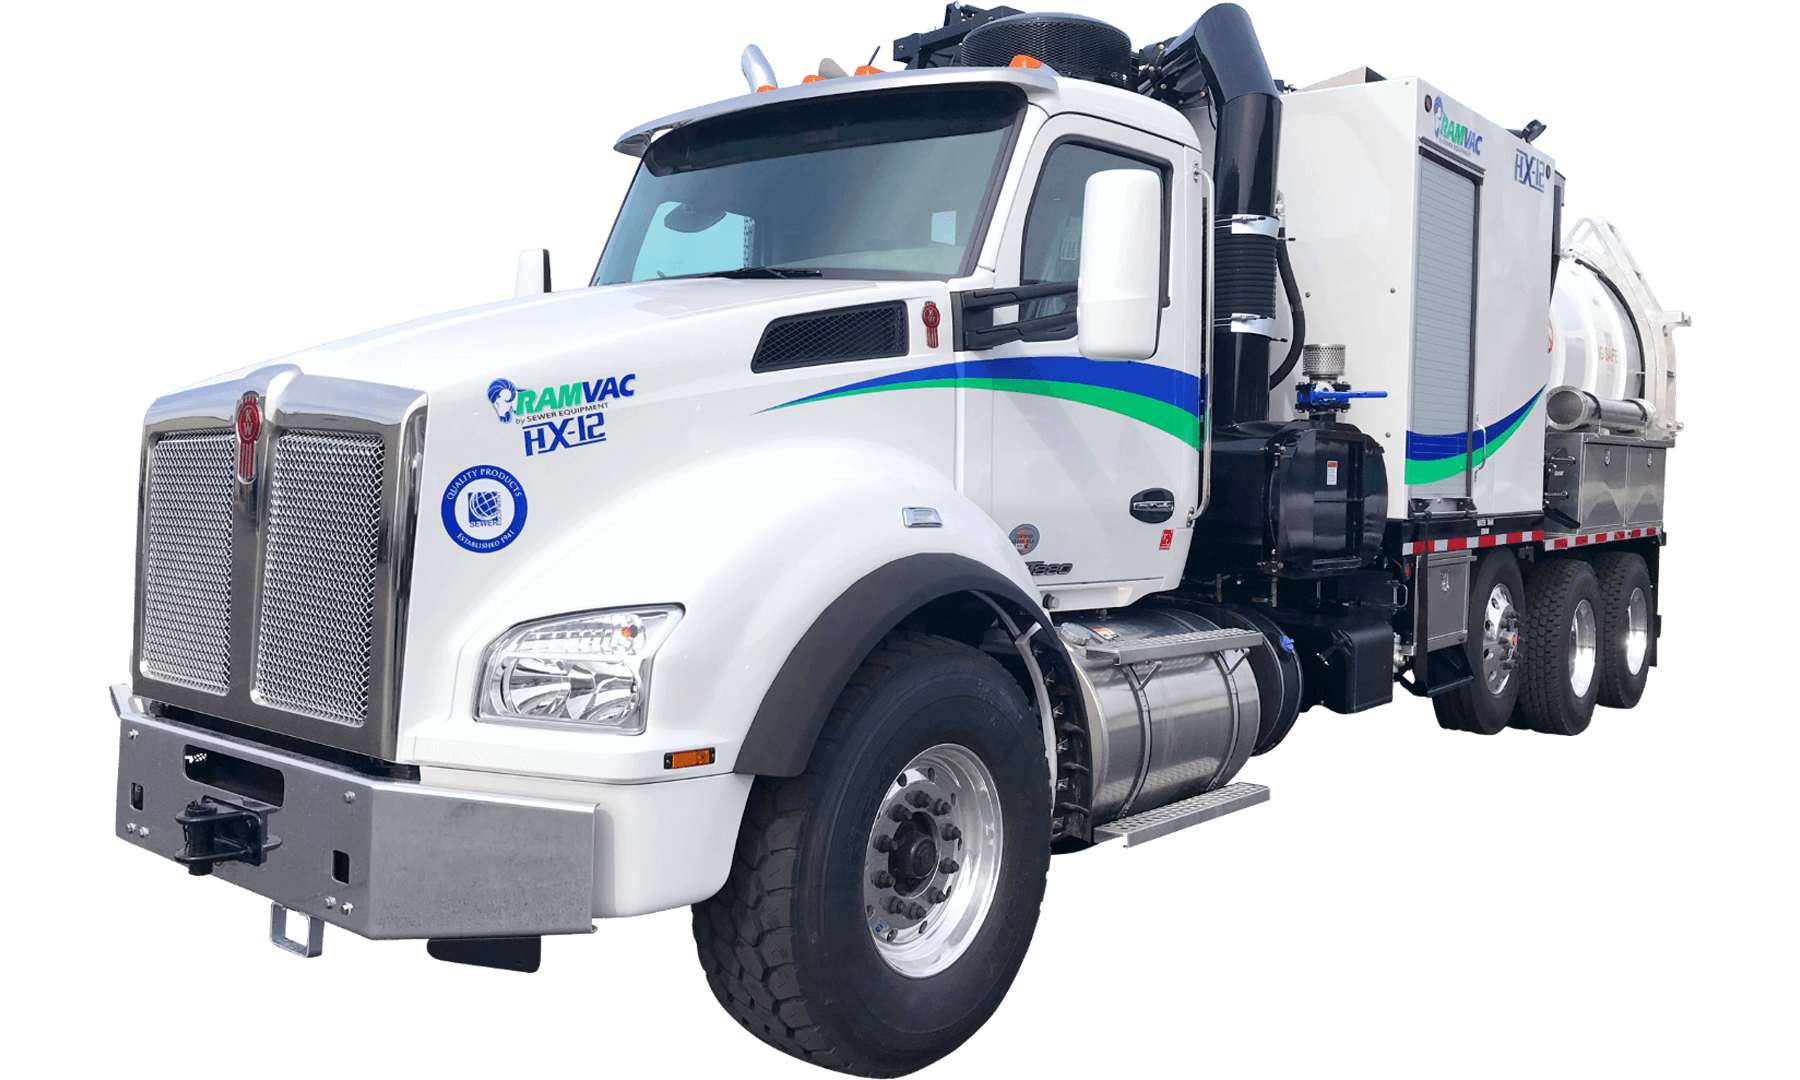 Mid-Sized Hydro Excavation Truck HX-12